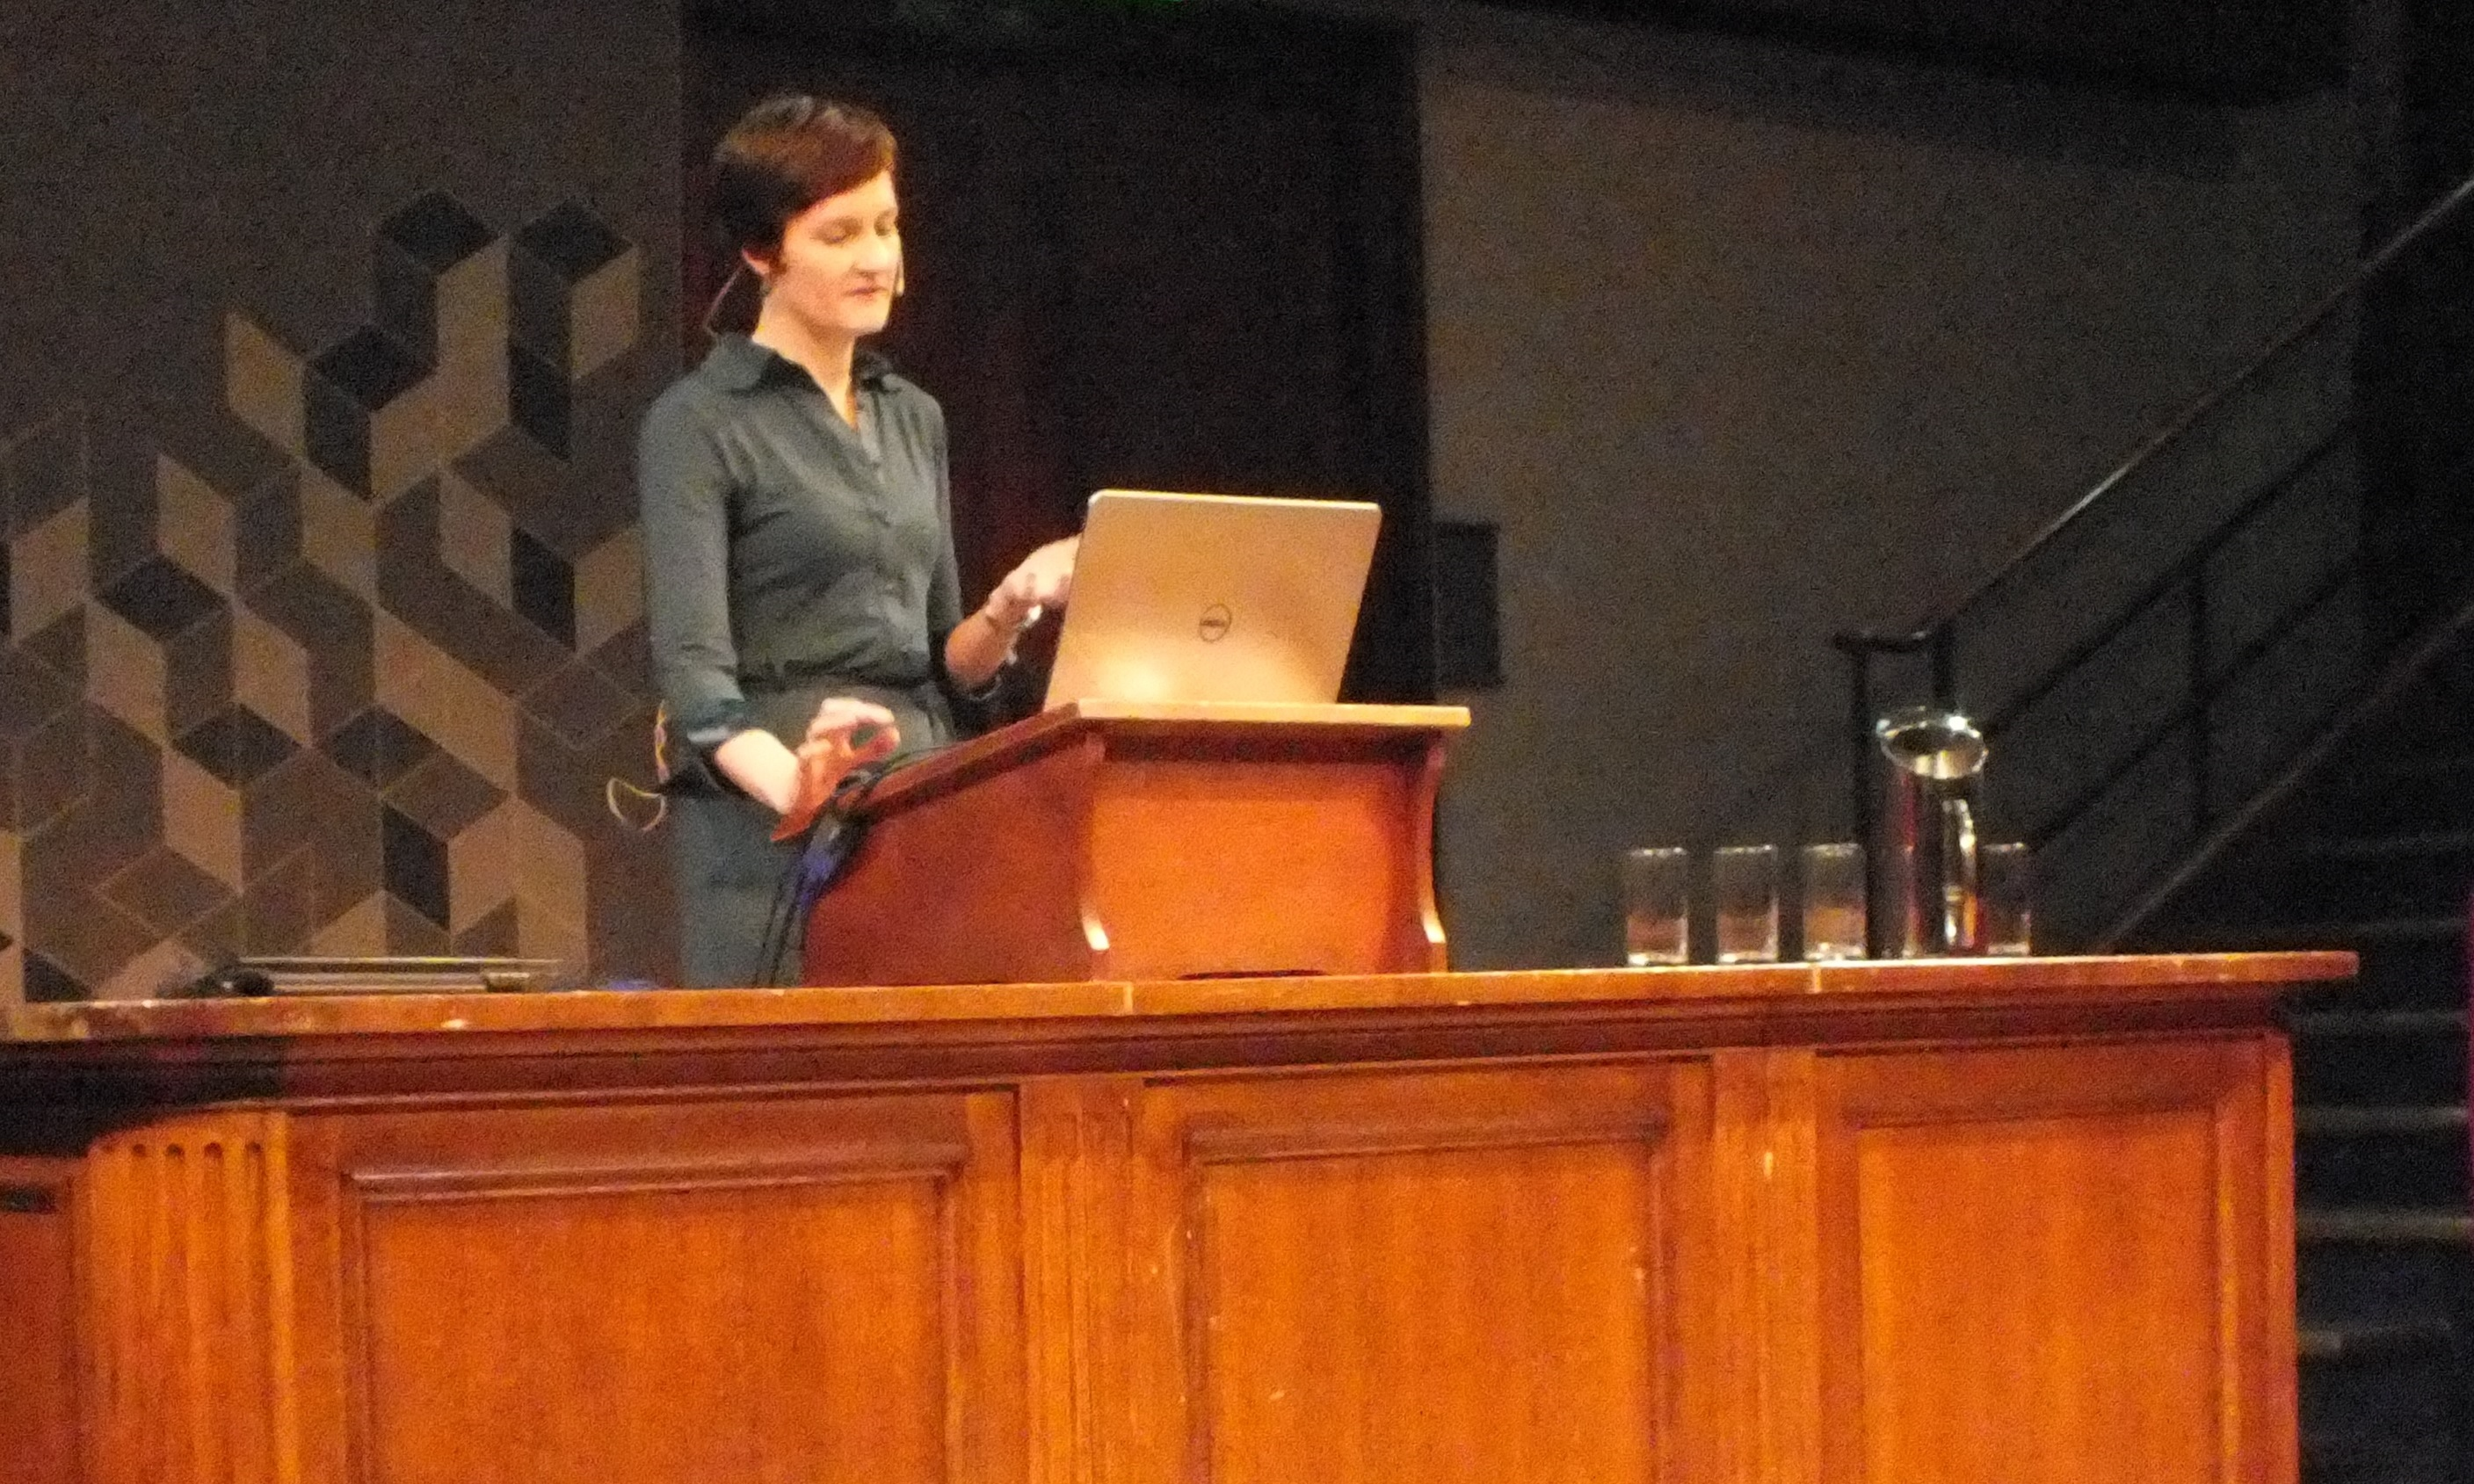 Listening in a non-native language in the presence of background noise; talk during the public event organised by the INSPIRE network at the Royal Institution, London, 20 Jan 2015.